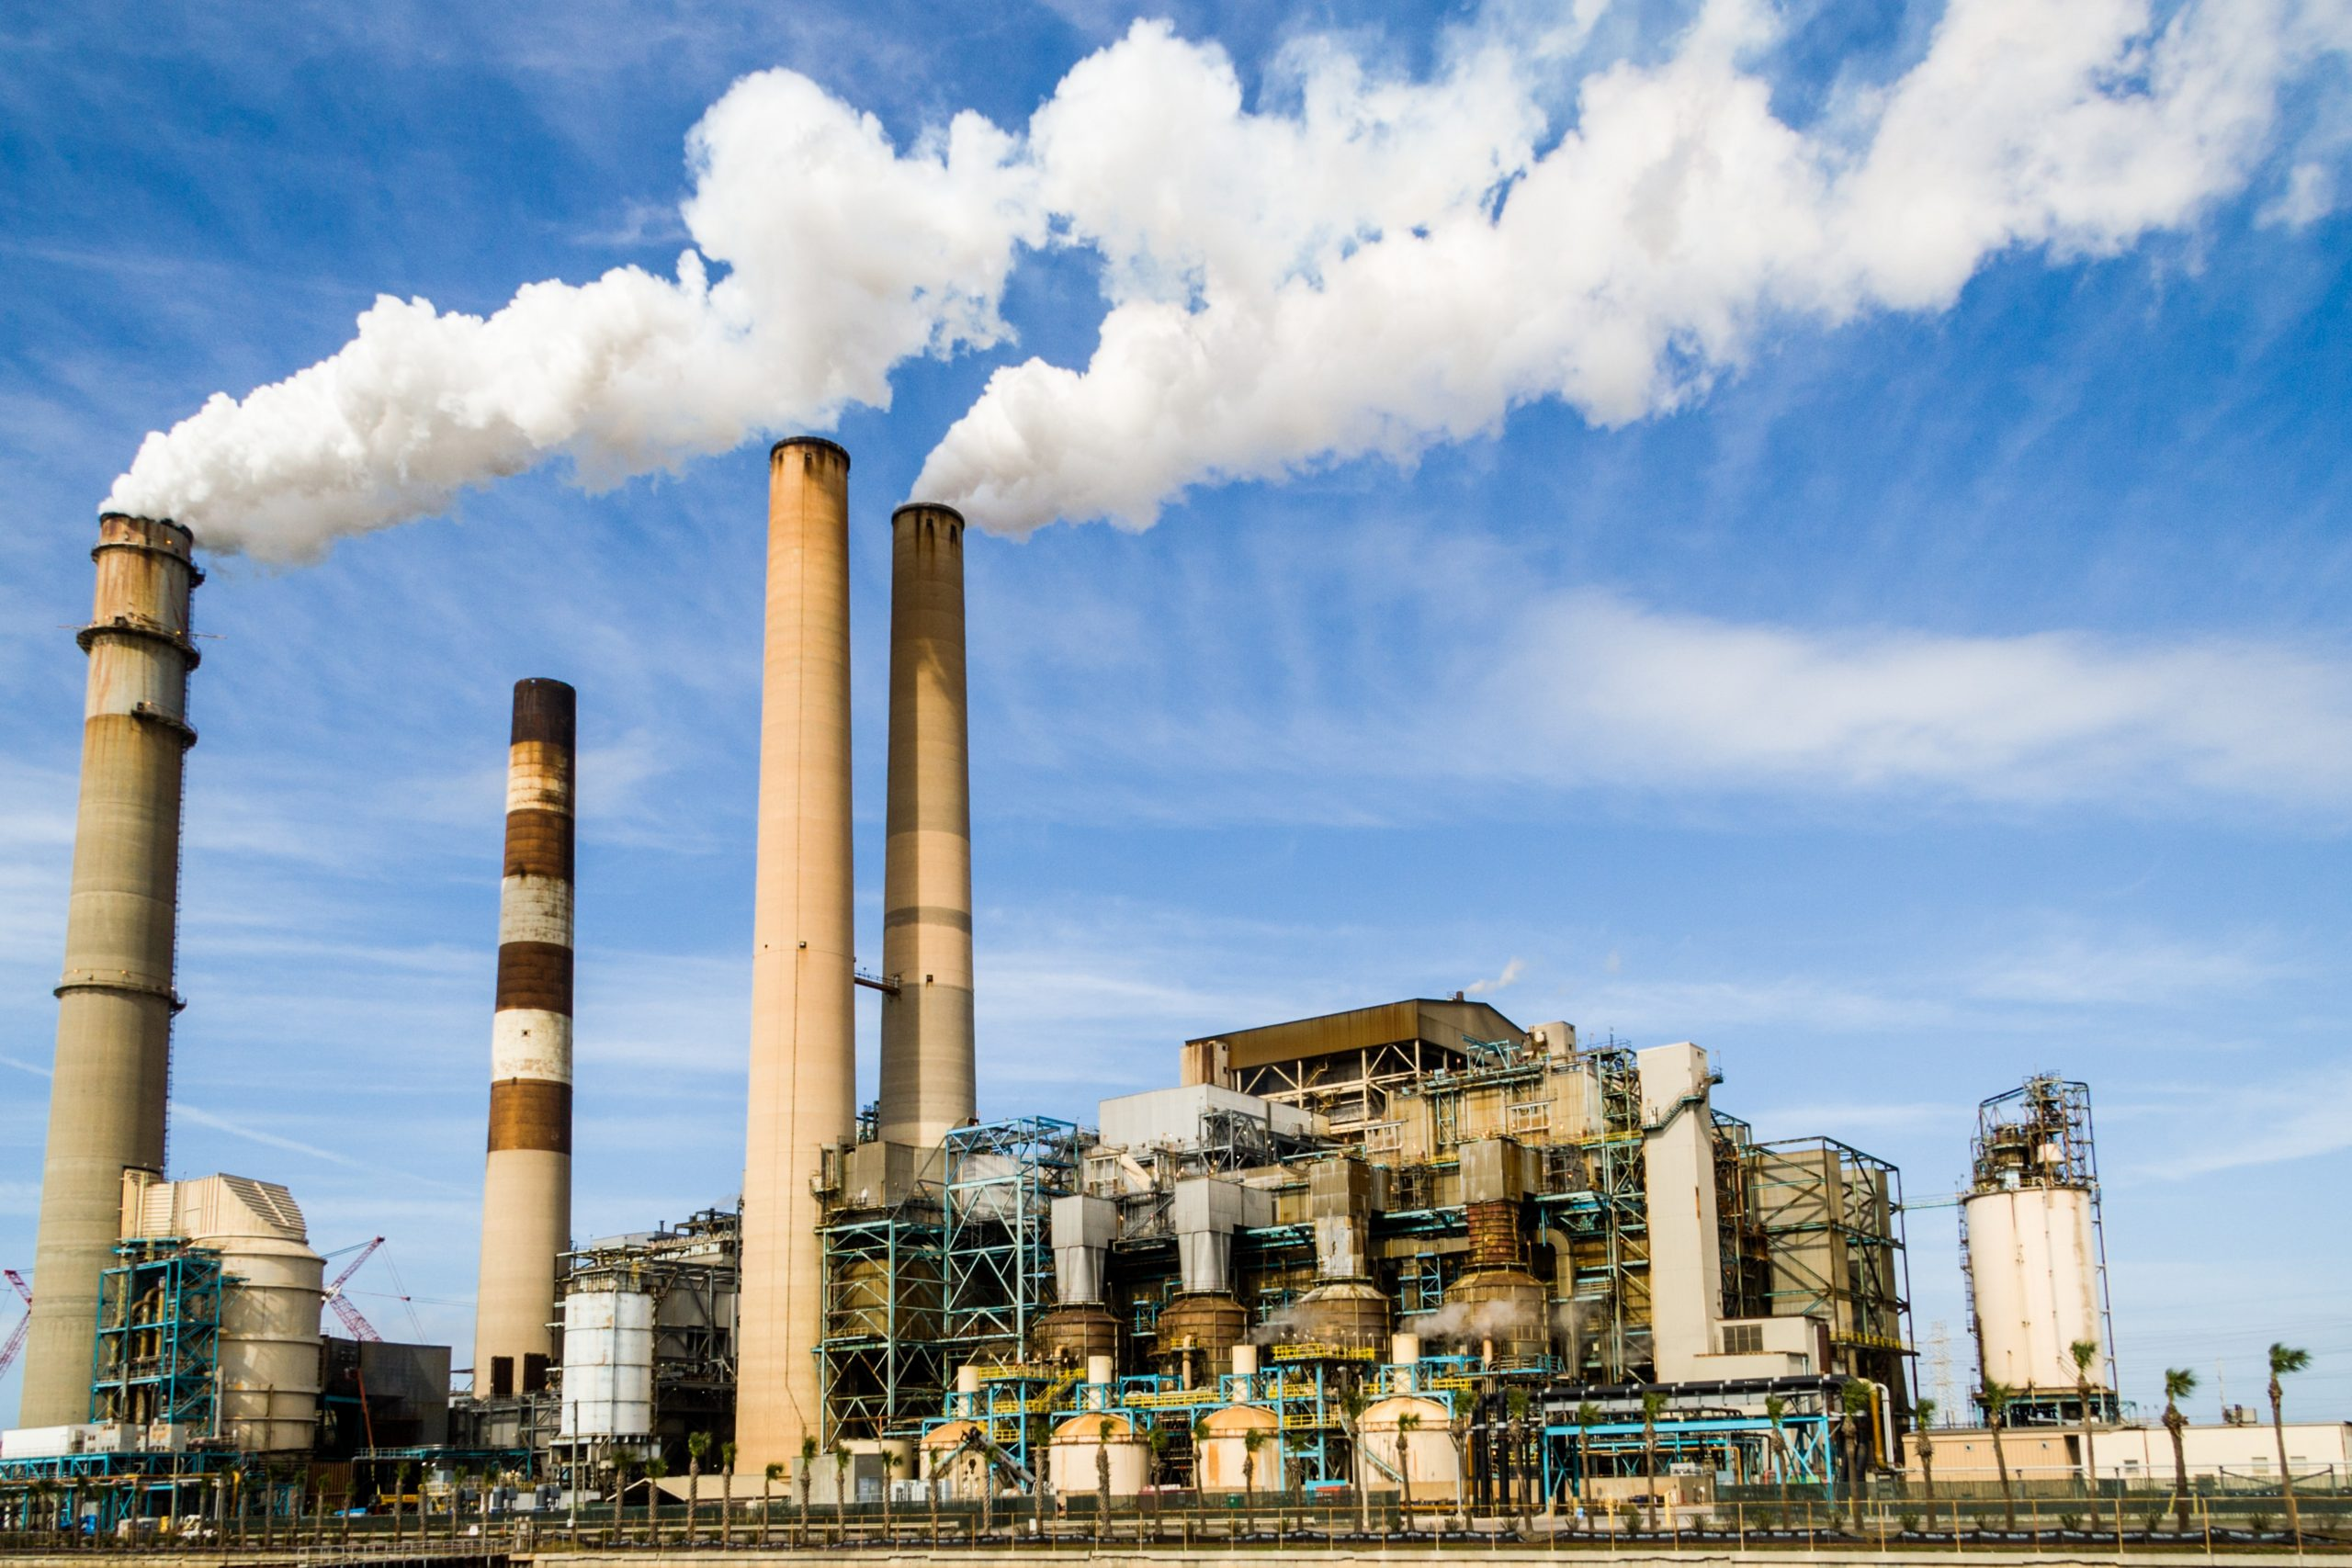 Selecting and Maintaining Steam Filters for Industrial Applications